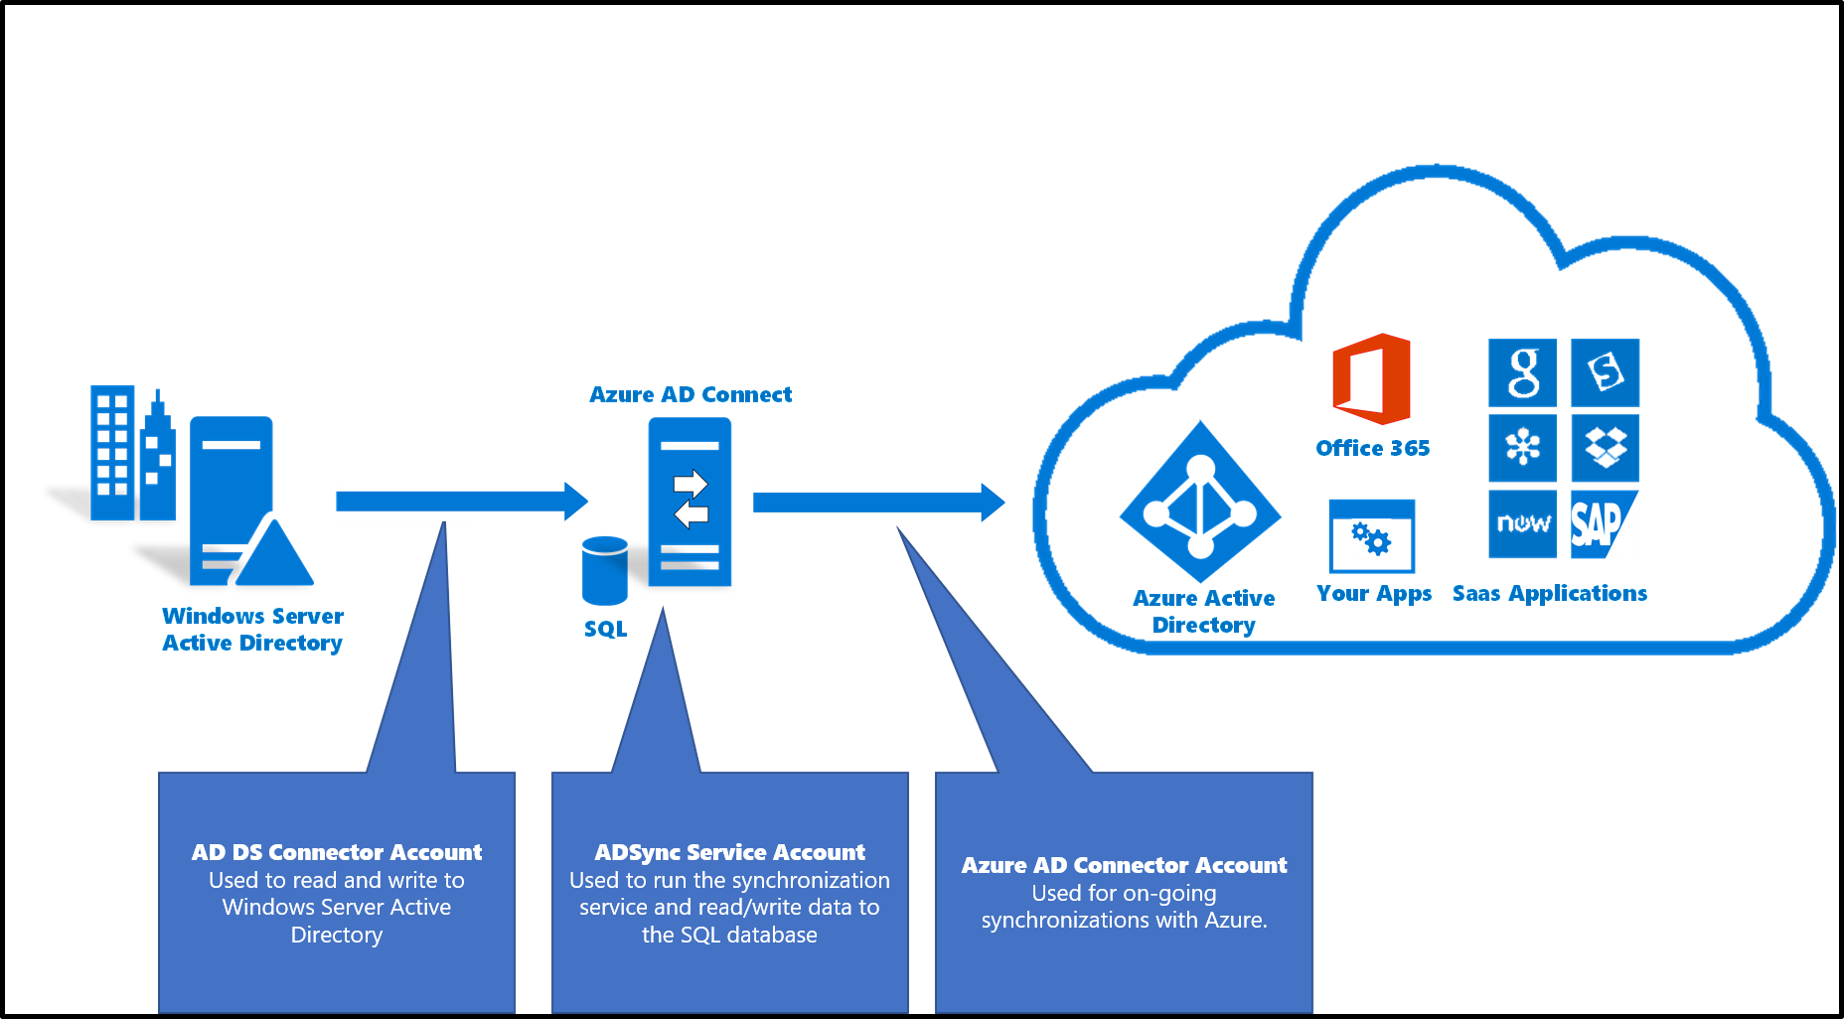 azure ad connect  accounts and permissions